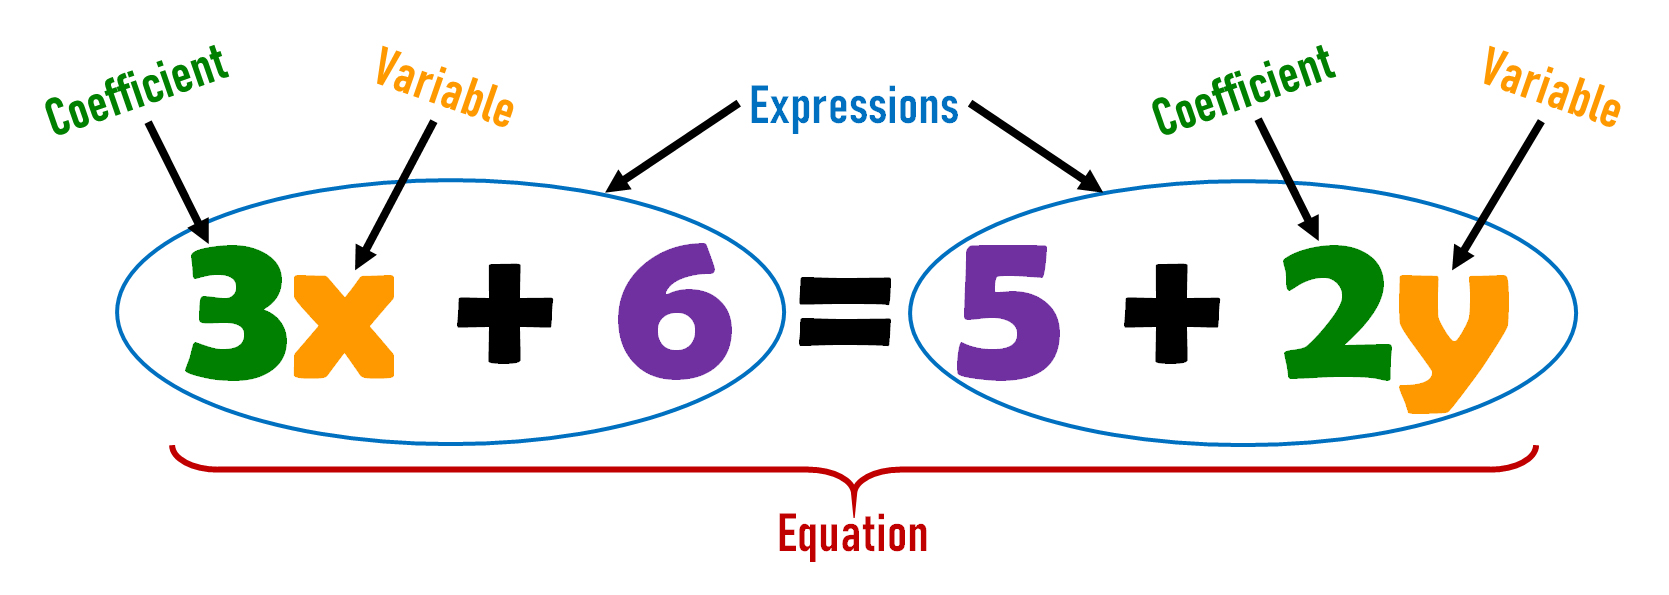 Equation, Expression, Variable